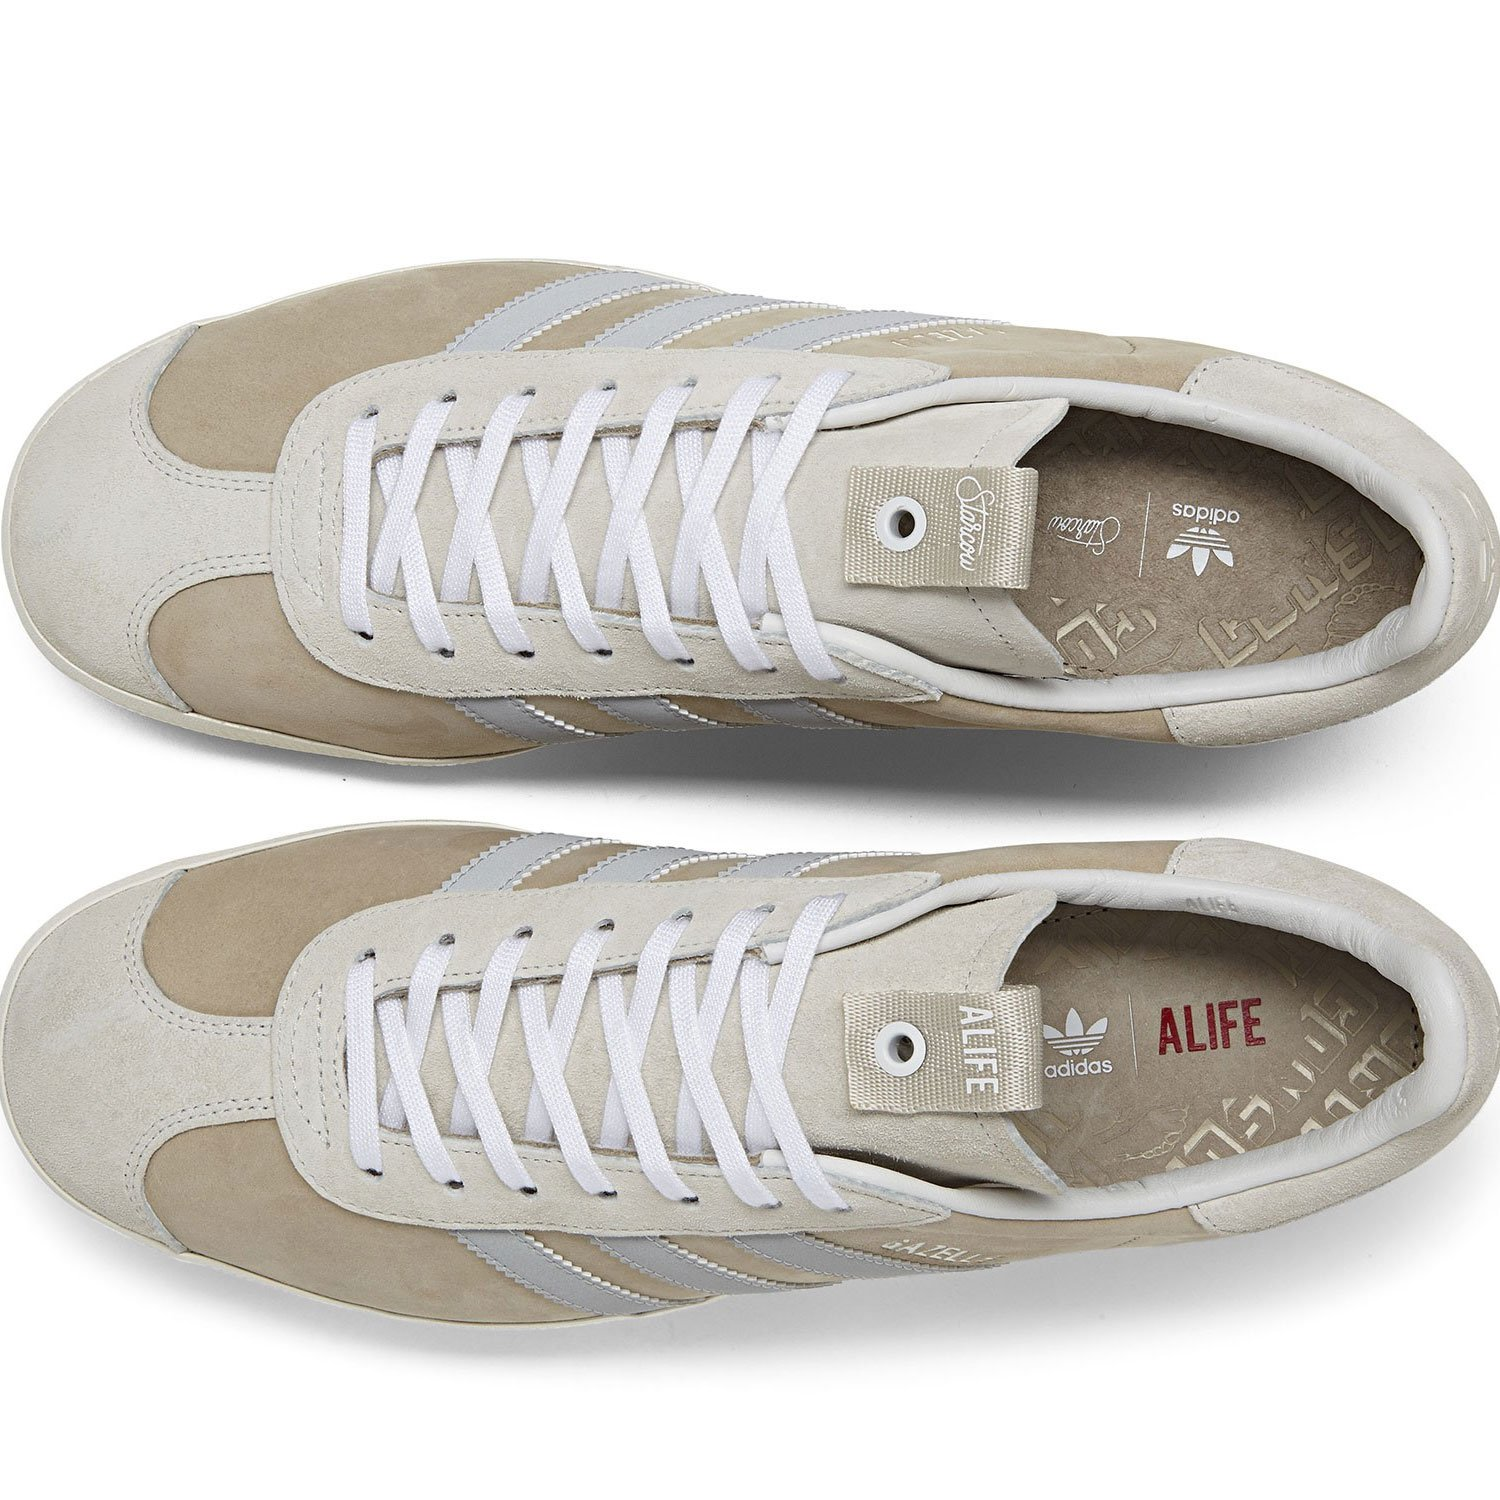 finest selection 358a7 136c8 adidas Mens Alife Gazelle S.E. TanWhite Suede Size 12 Amazon.co.uk Shoes   Bags